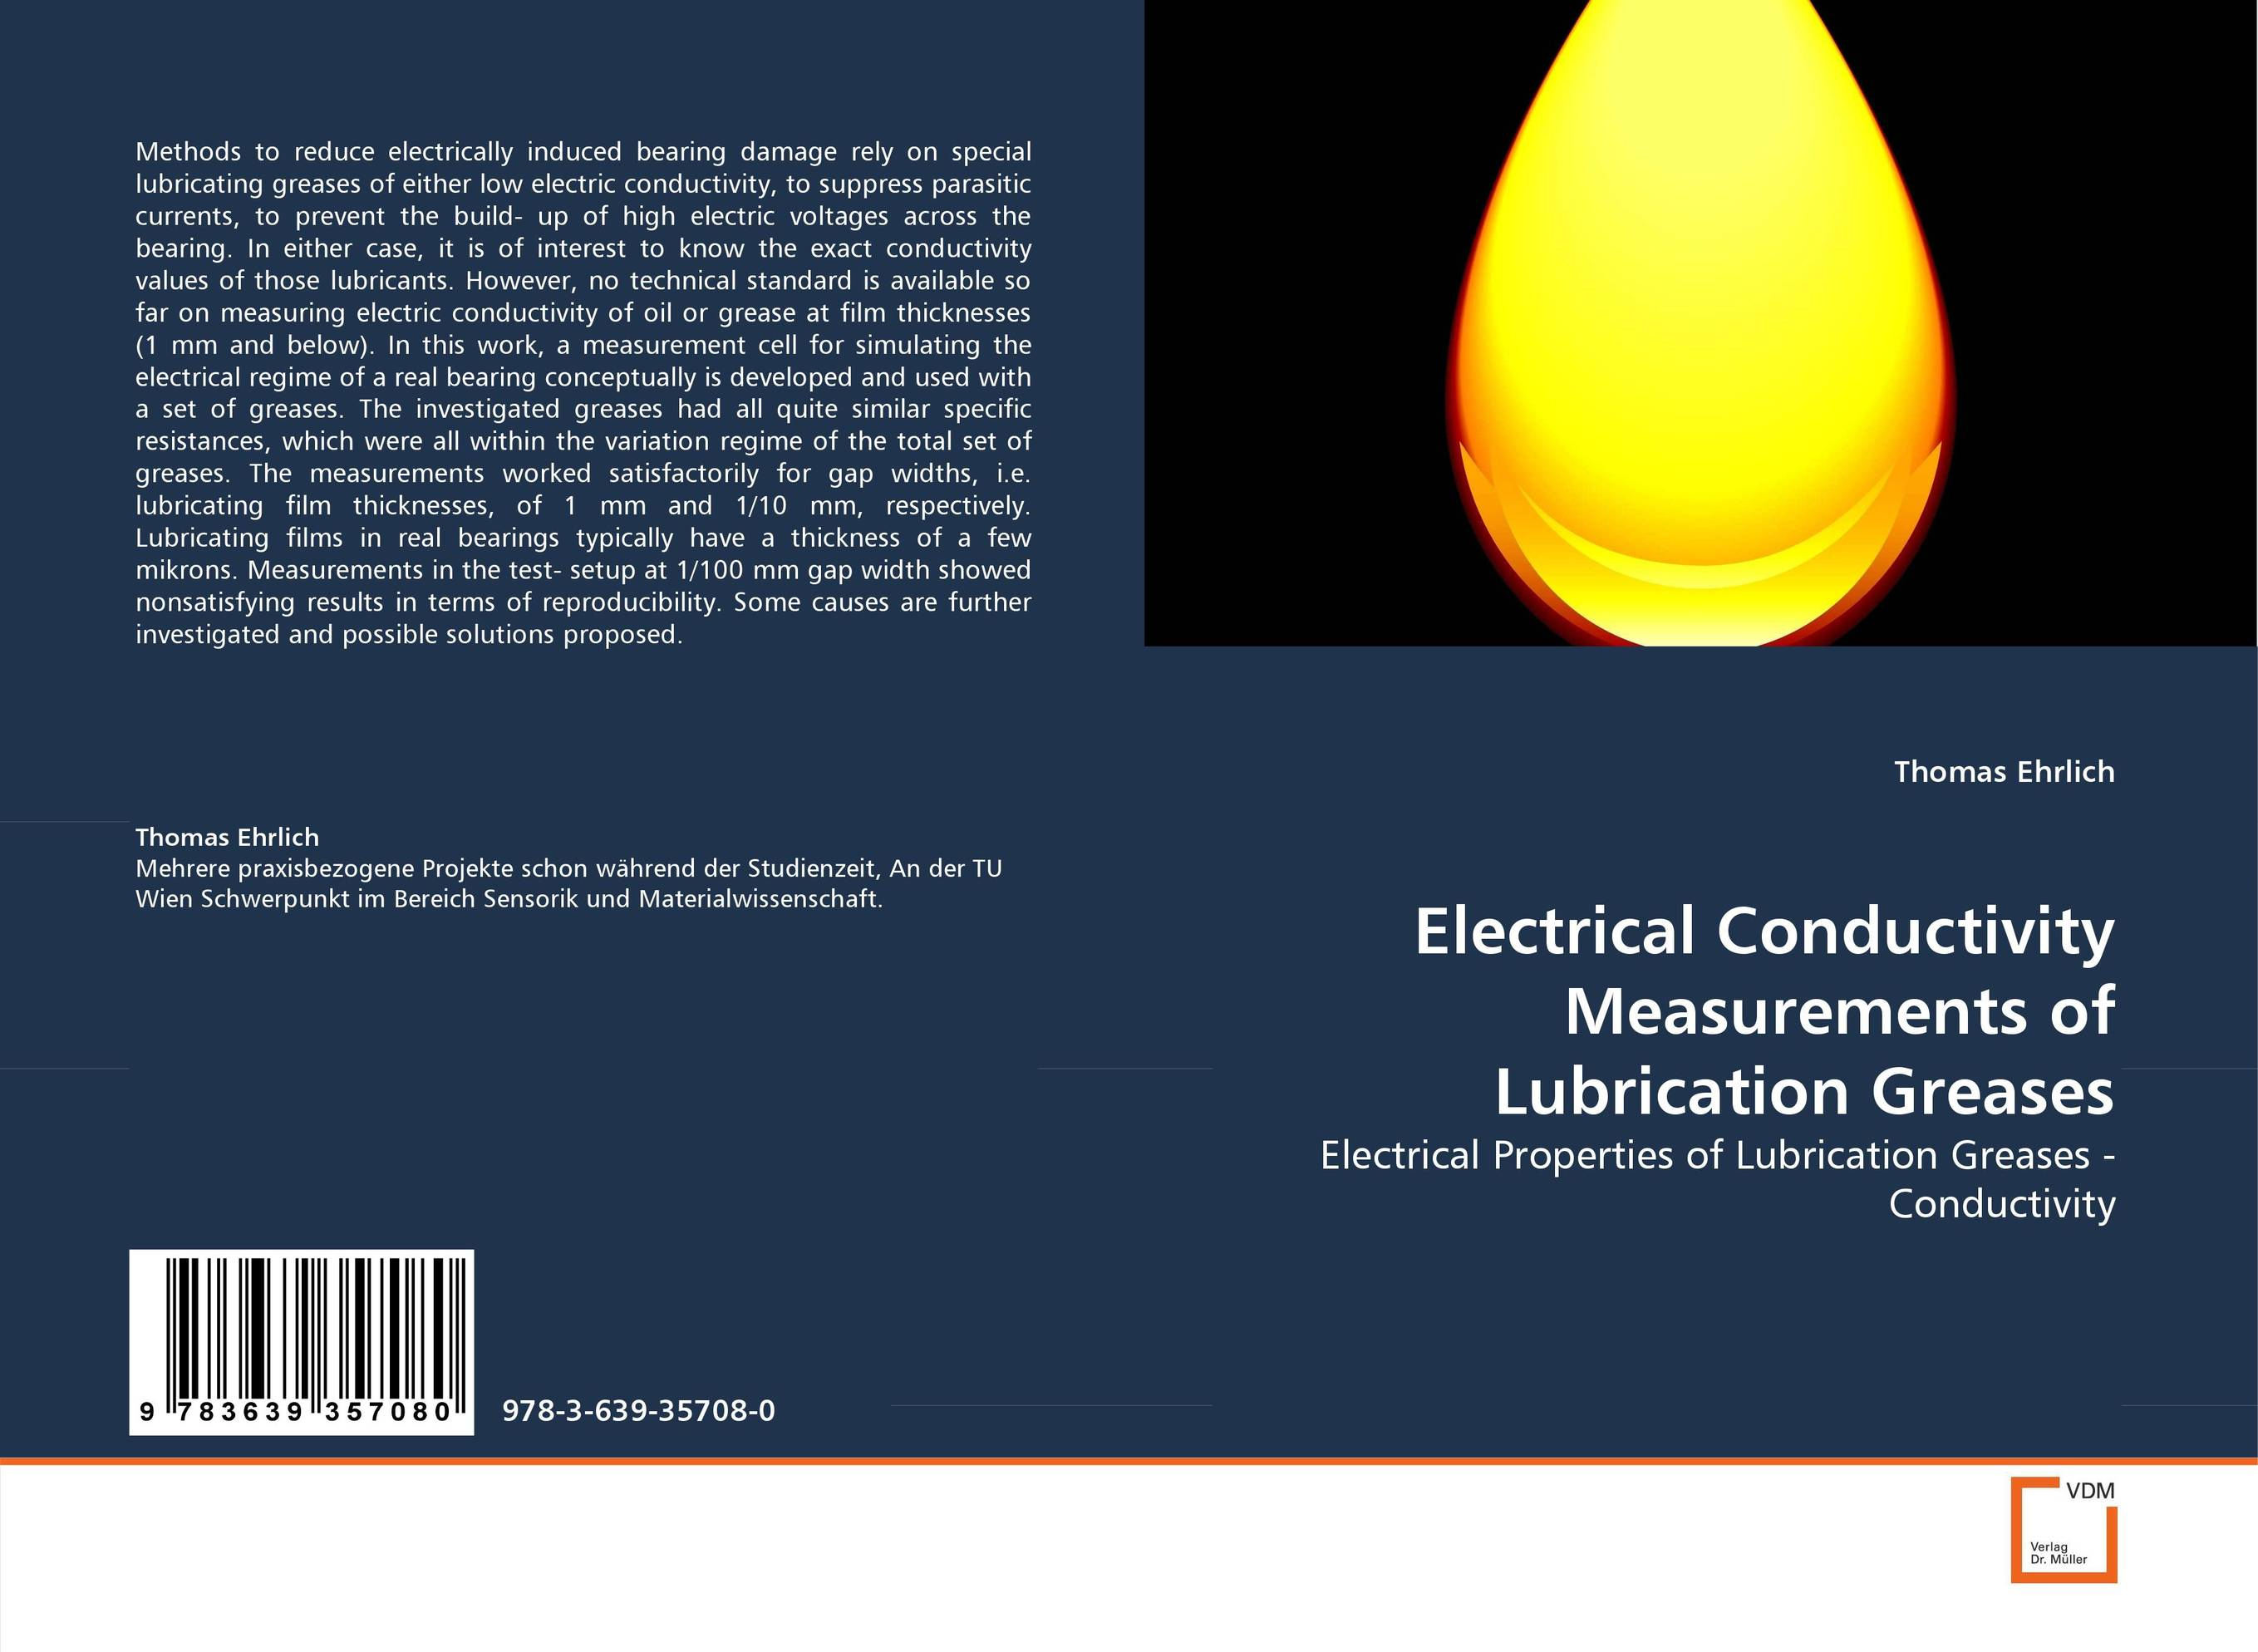 Electrical Conductivity Measurements of Lubrication Greases